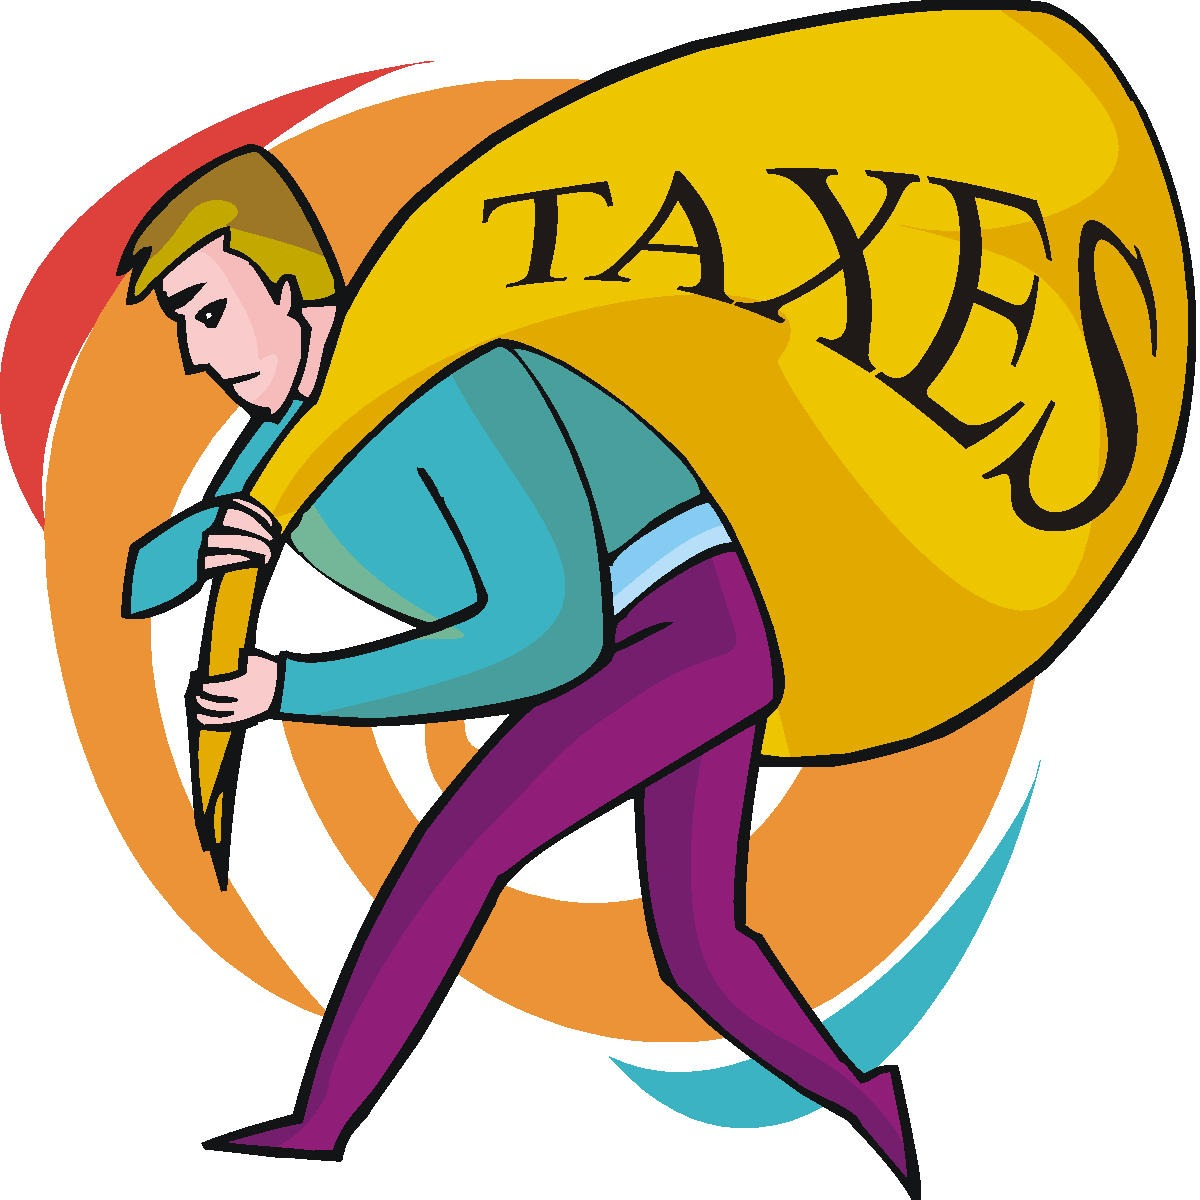 Pay taxes clipart.